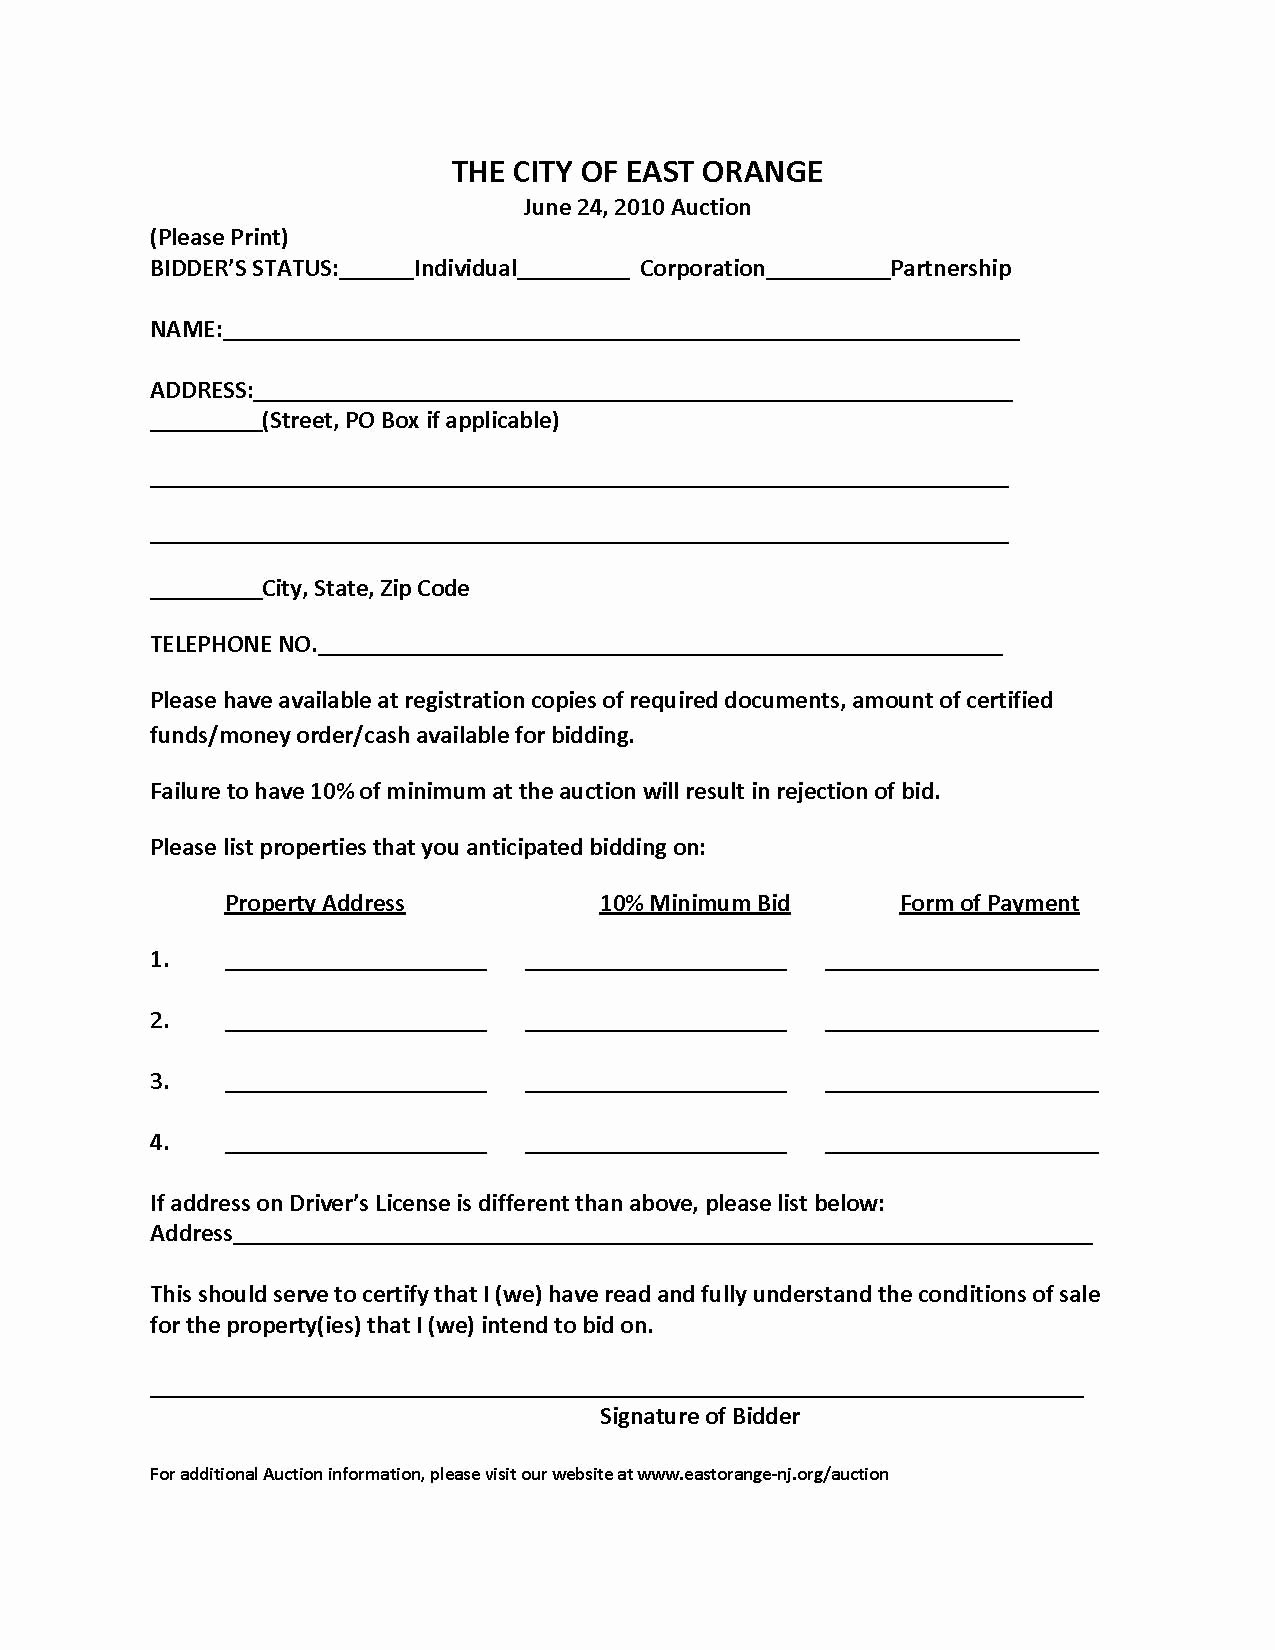 Template for Registration form Best Of Registration form Templates